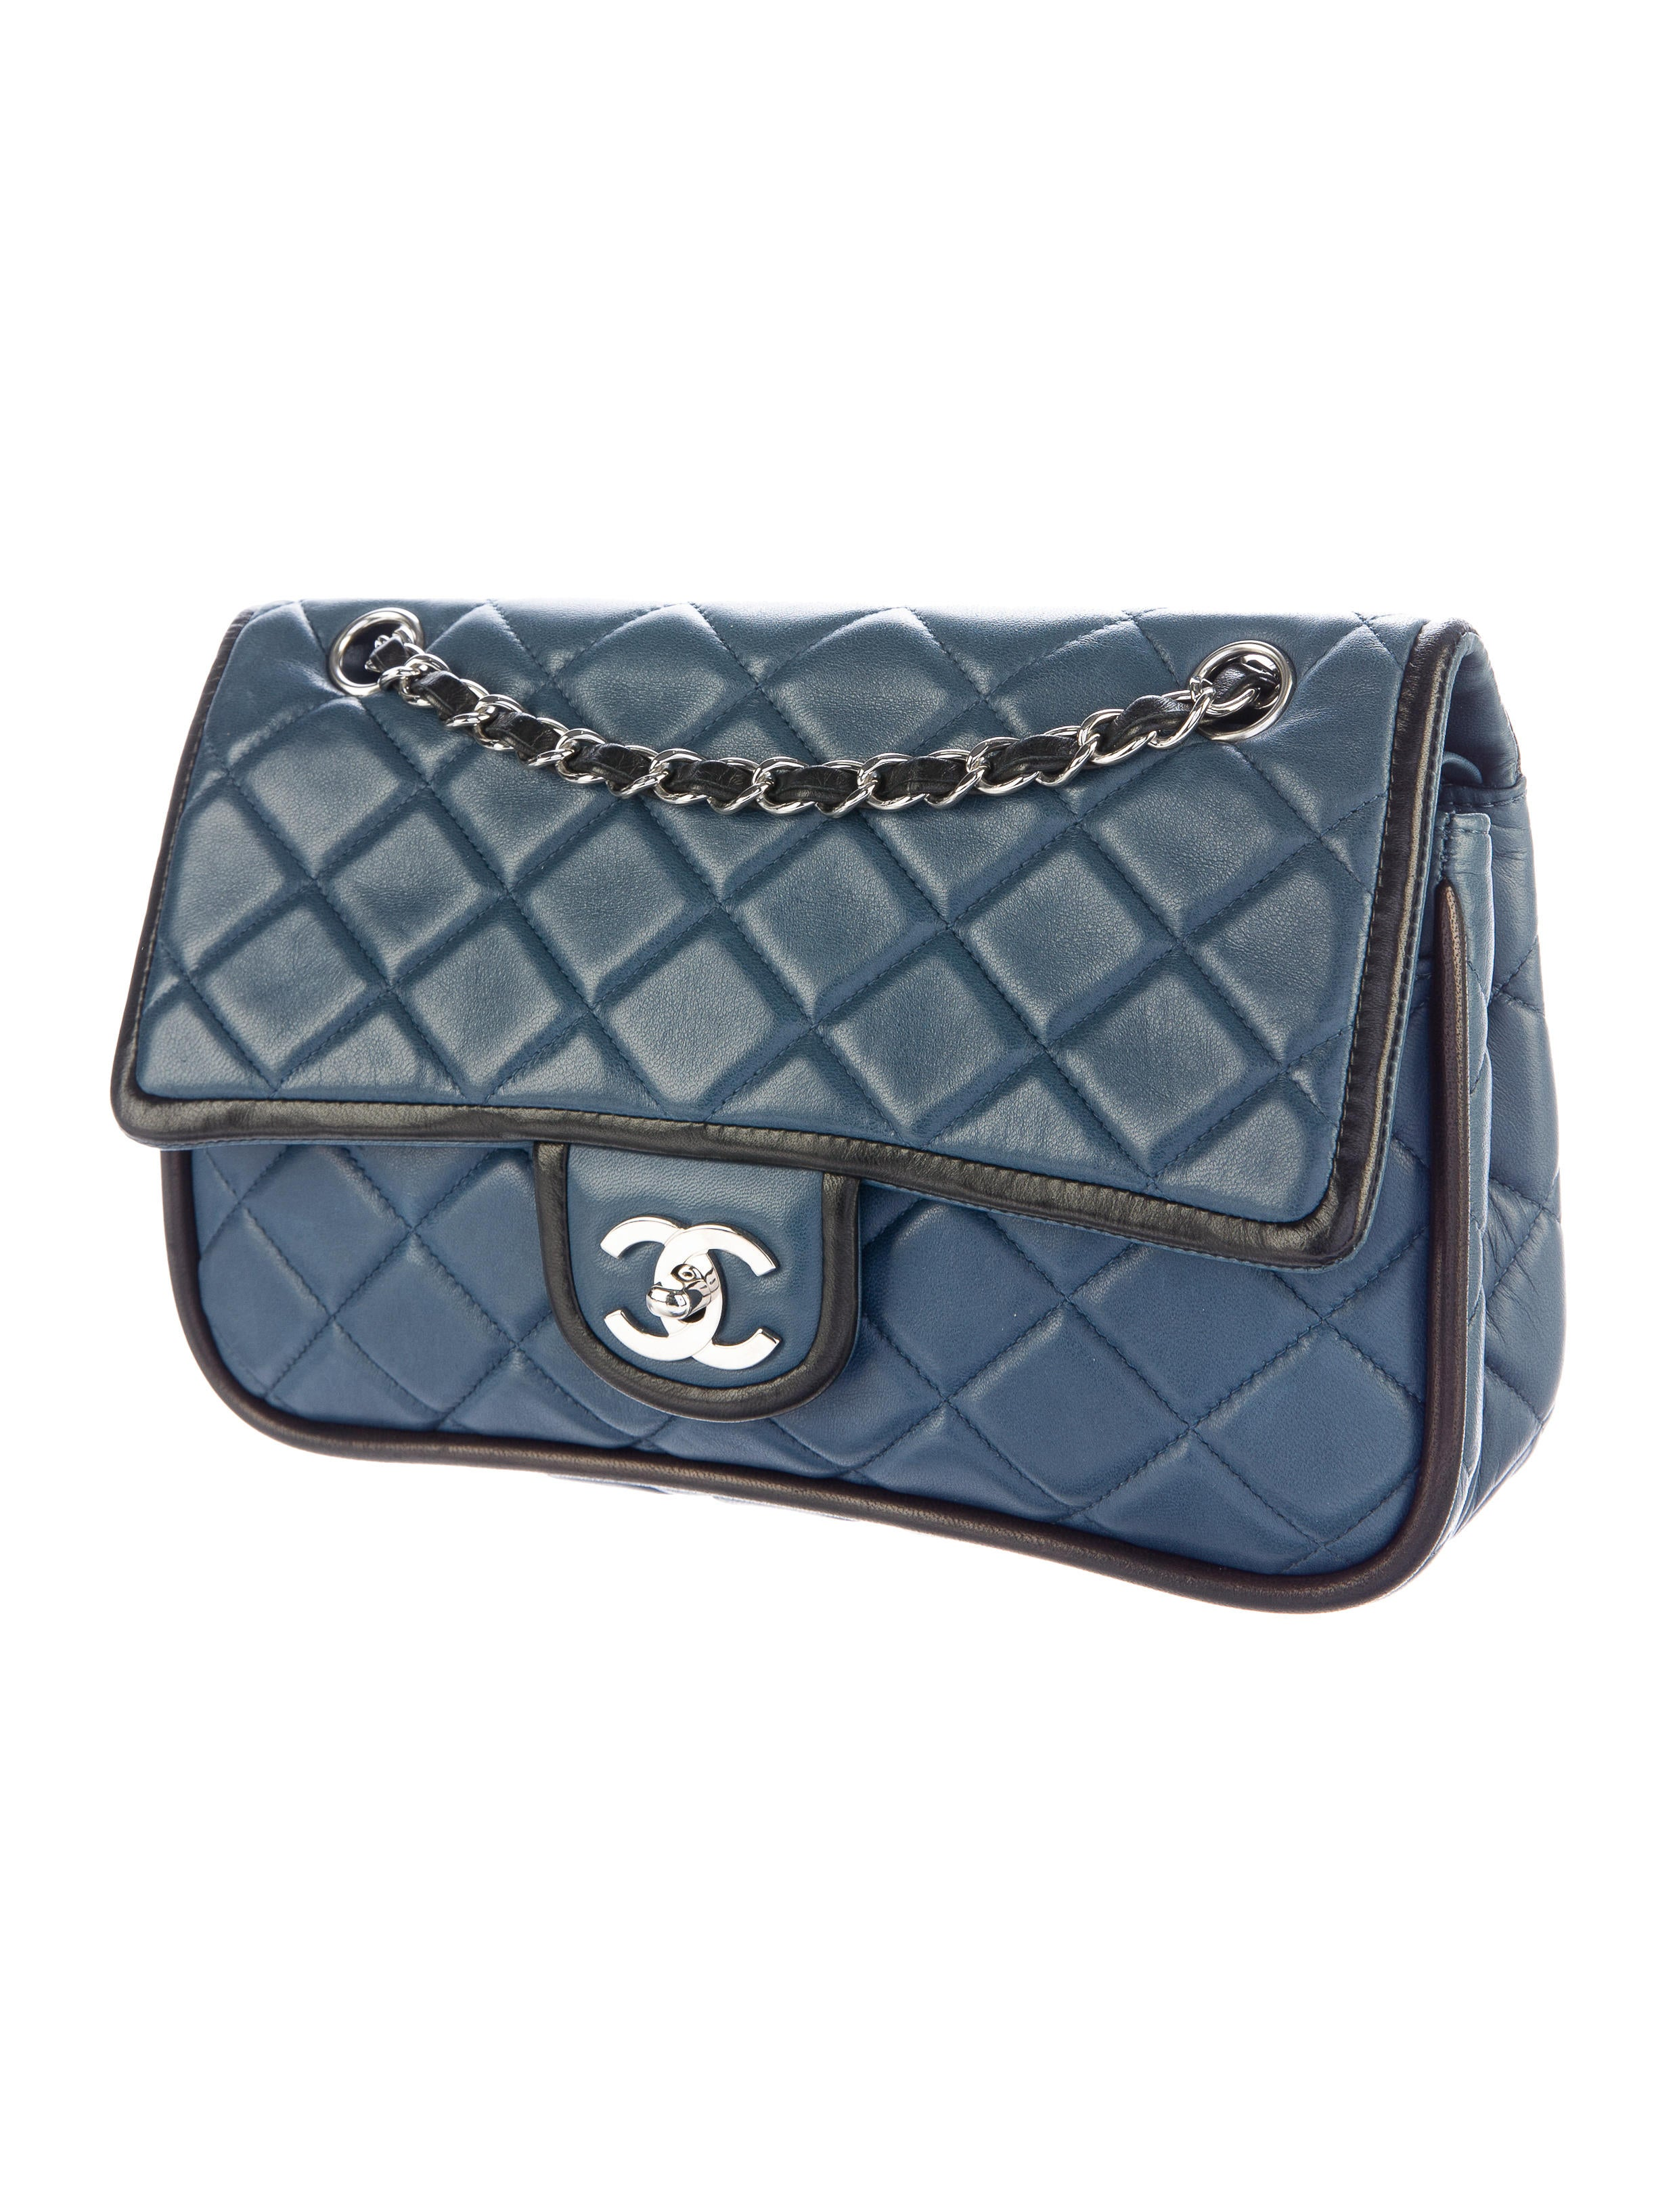 1b6c8658cd6f19 Chanel Bag Small Bag | Stanford Center for Opportunity Policy in ...